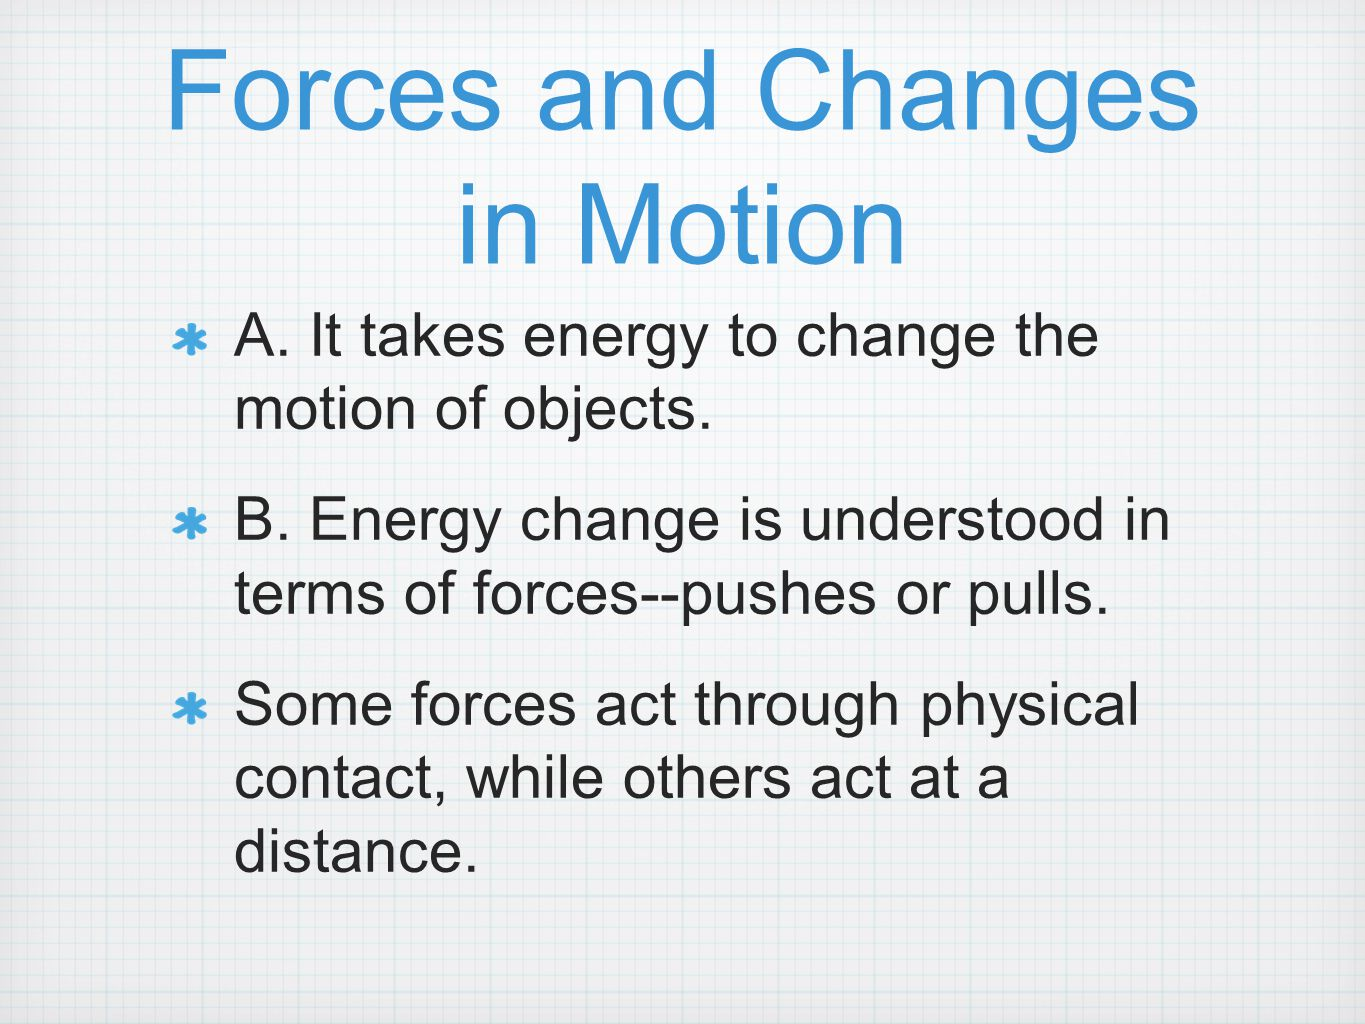 Forces and Changes in Motion